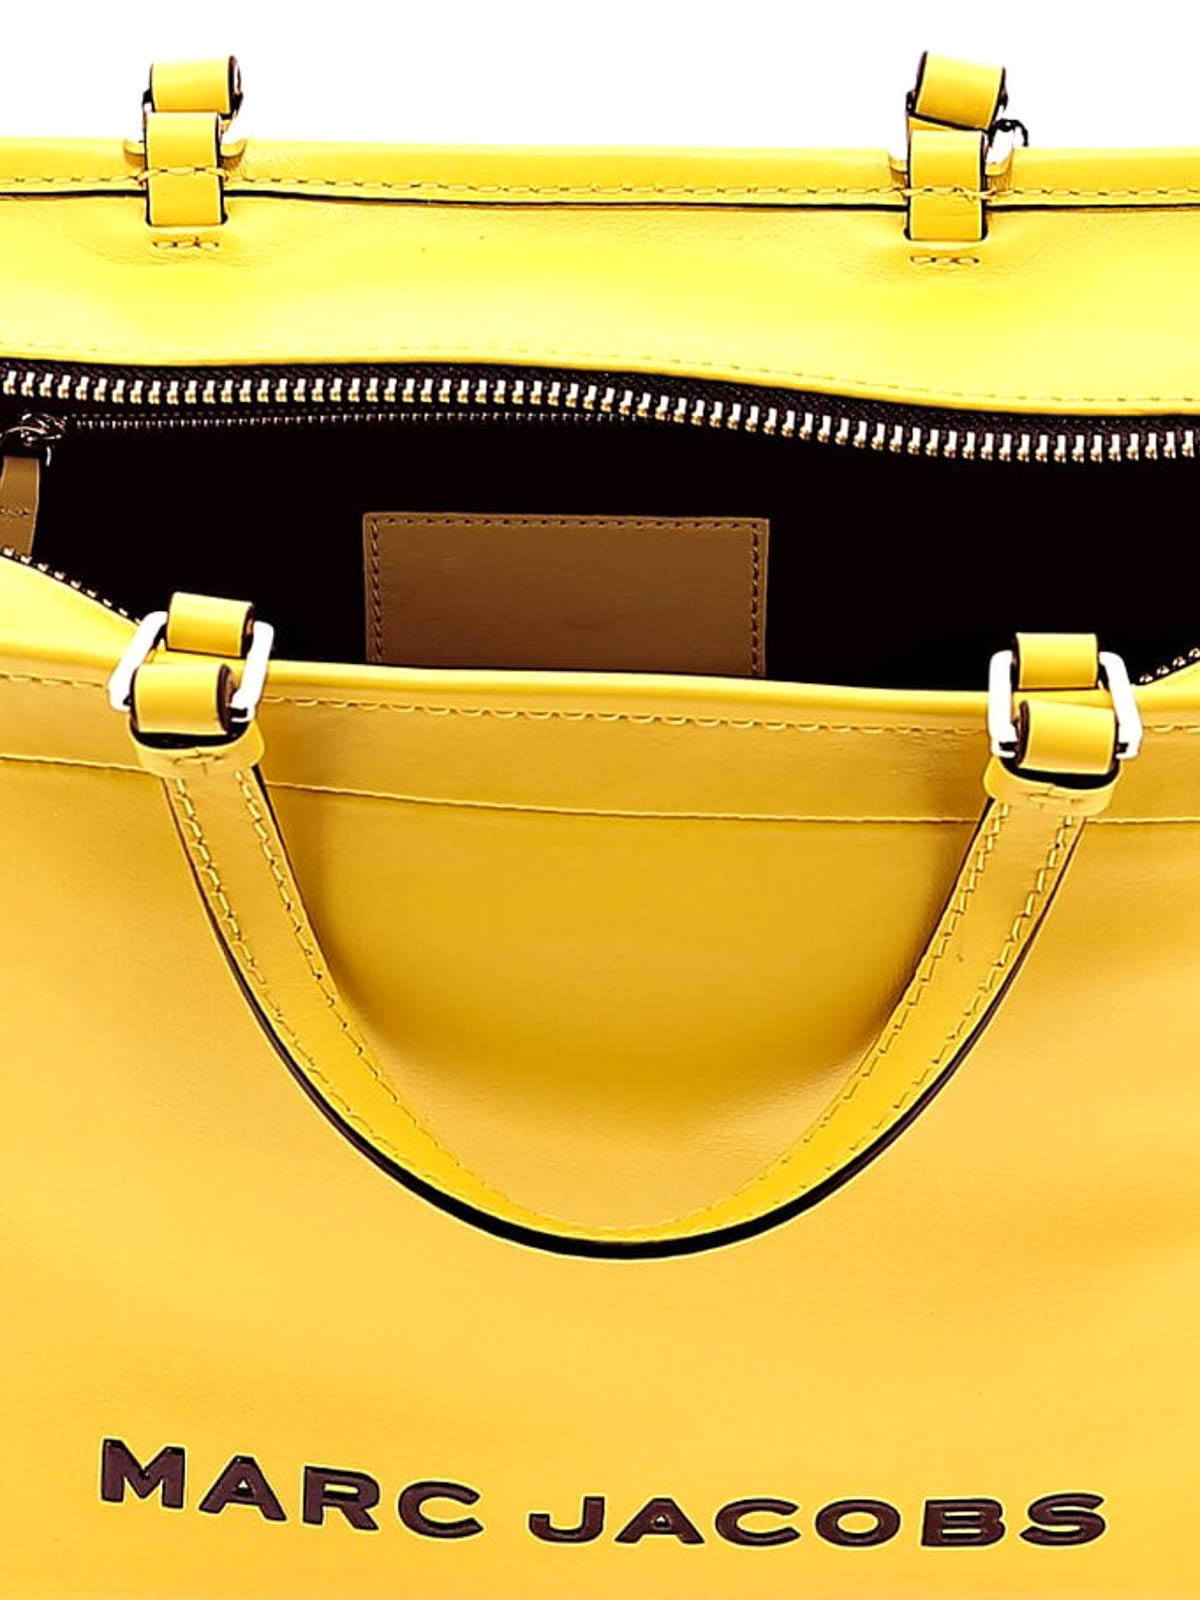 c5ec5aa85 MARC JACOBS buy online The Box 29 yellow leather tote. MARC JACOBS: totes  bags ...